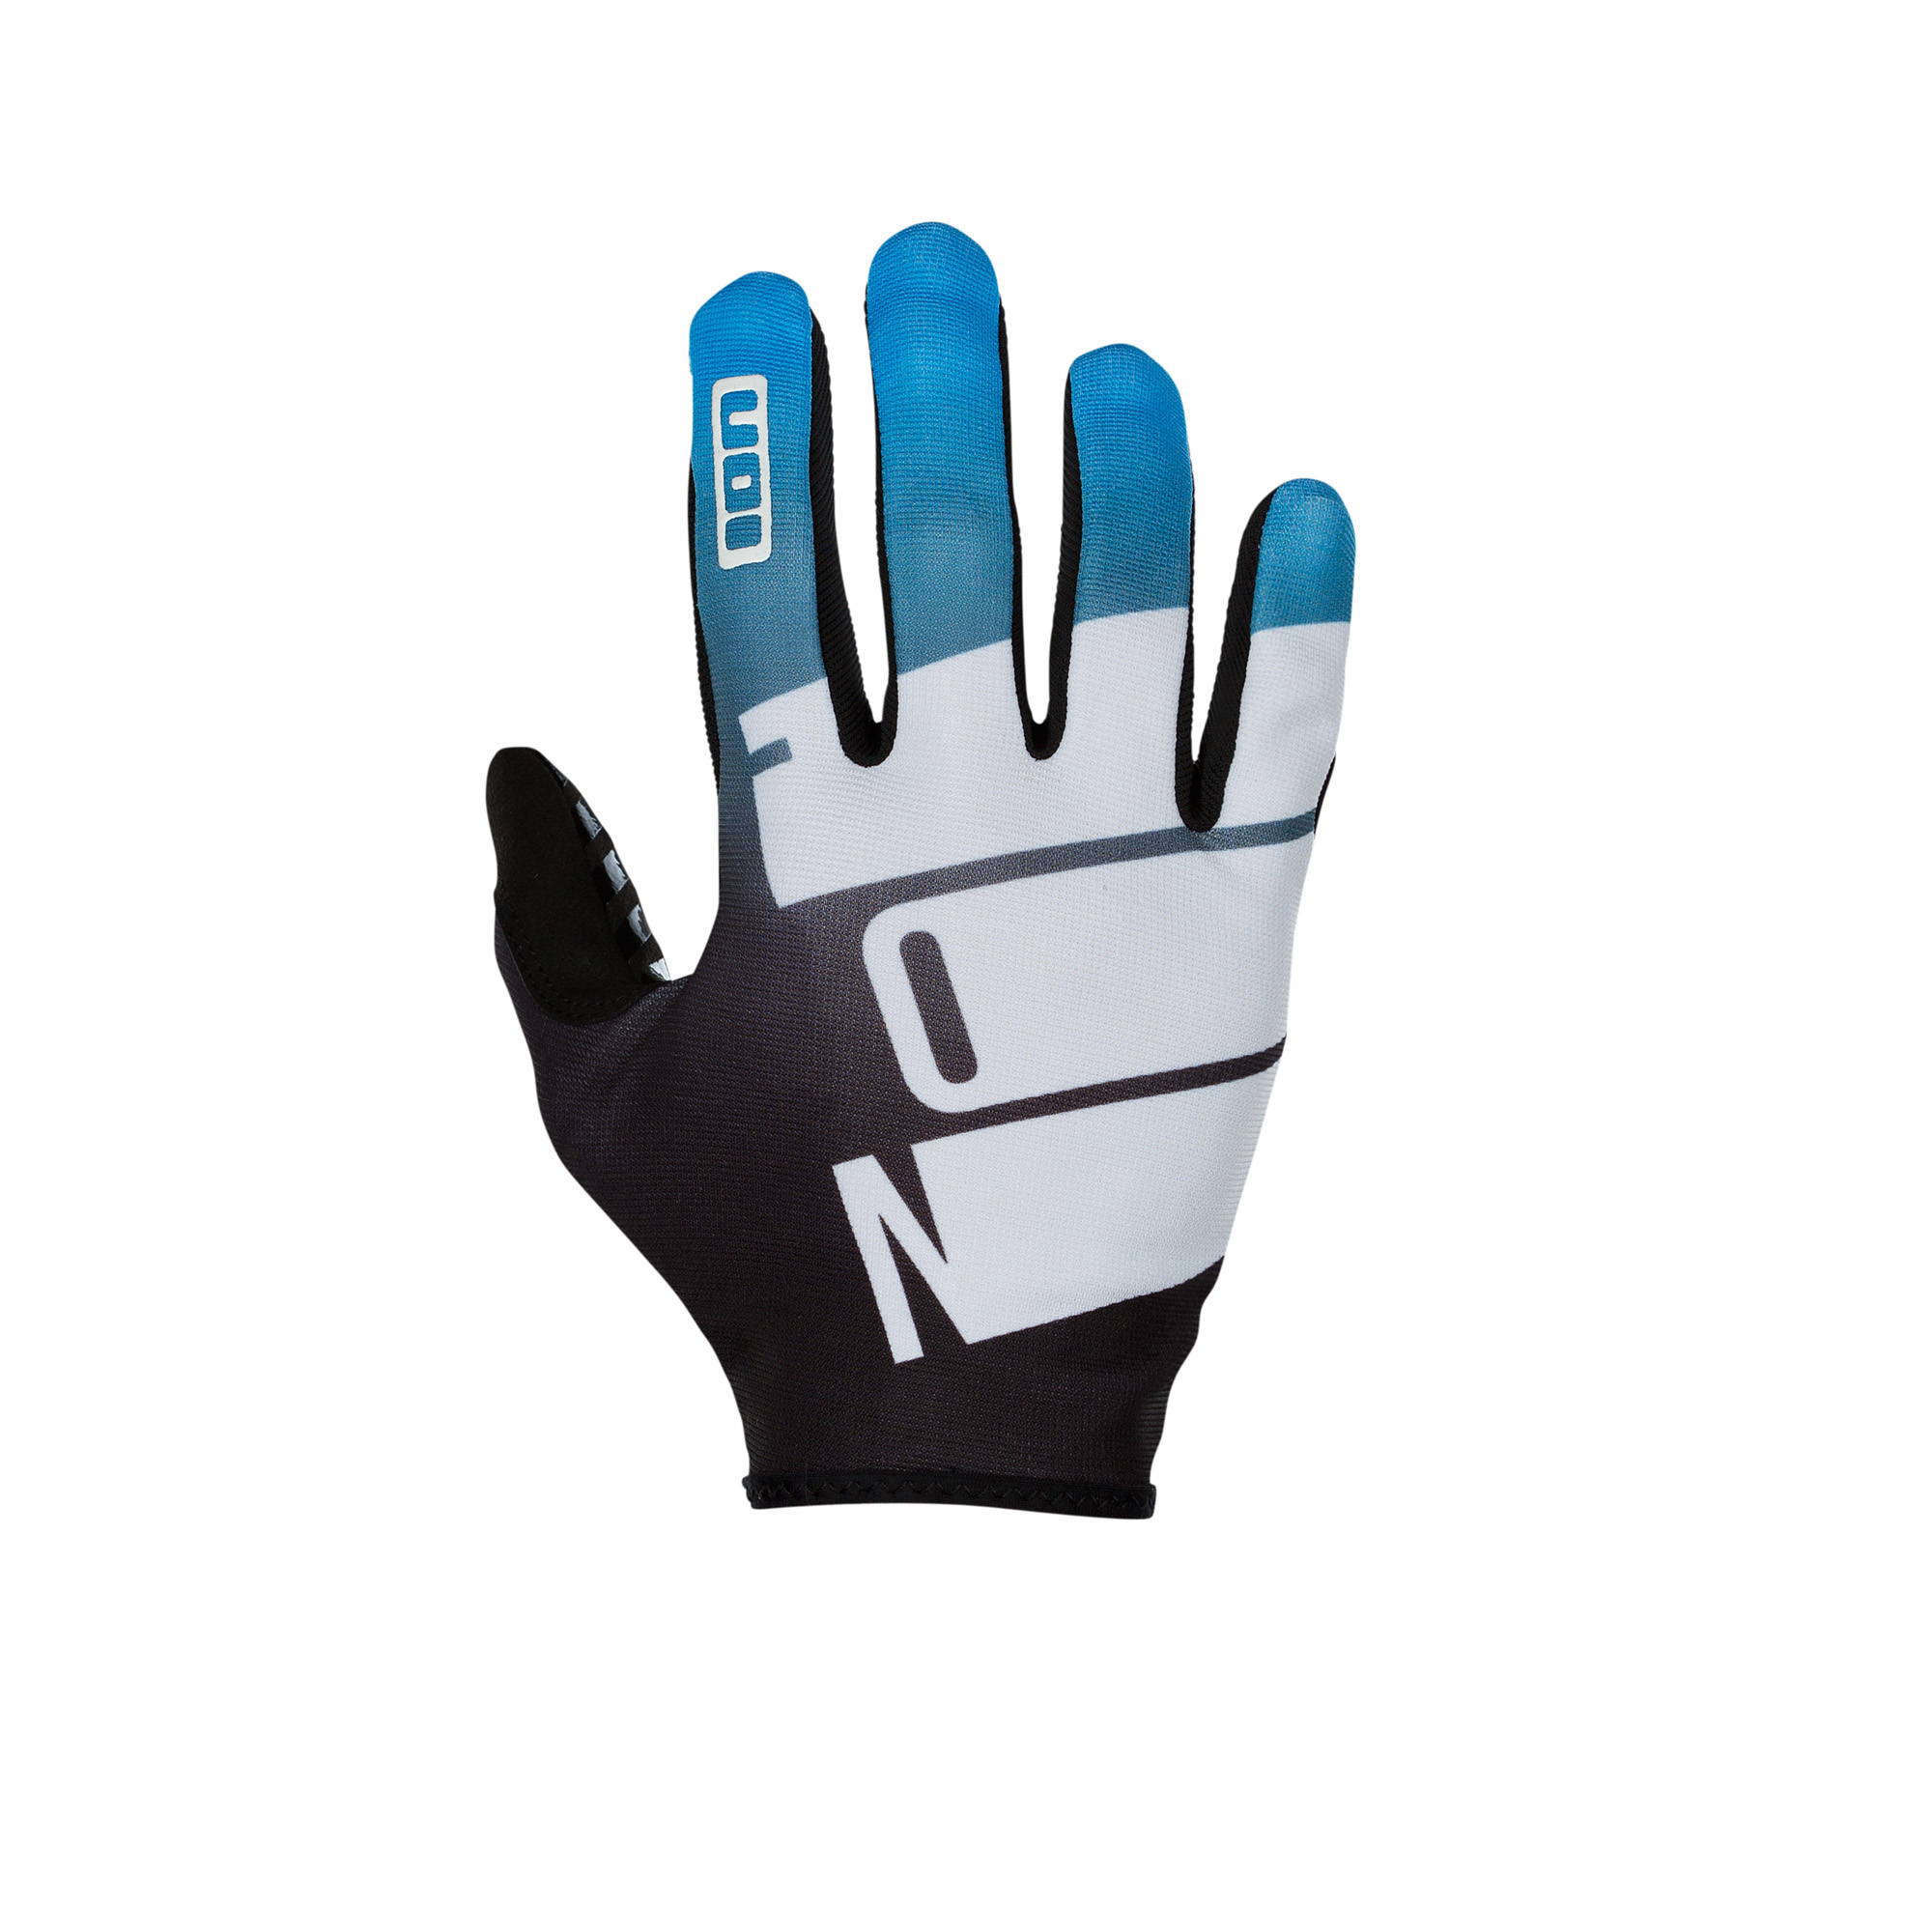 img_produse/ion_dude_glove_night_blue_1_390_20.03.16_2662.jpg